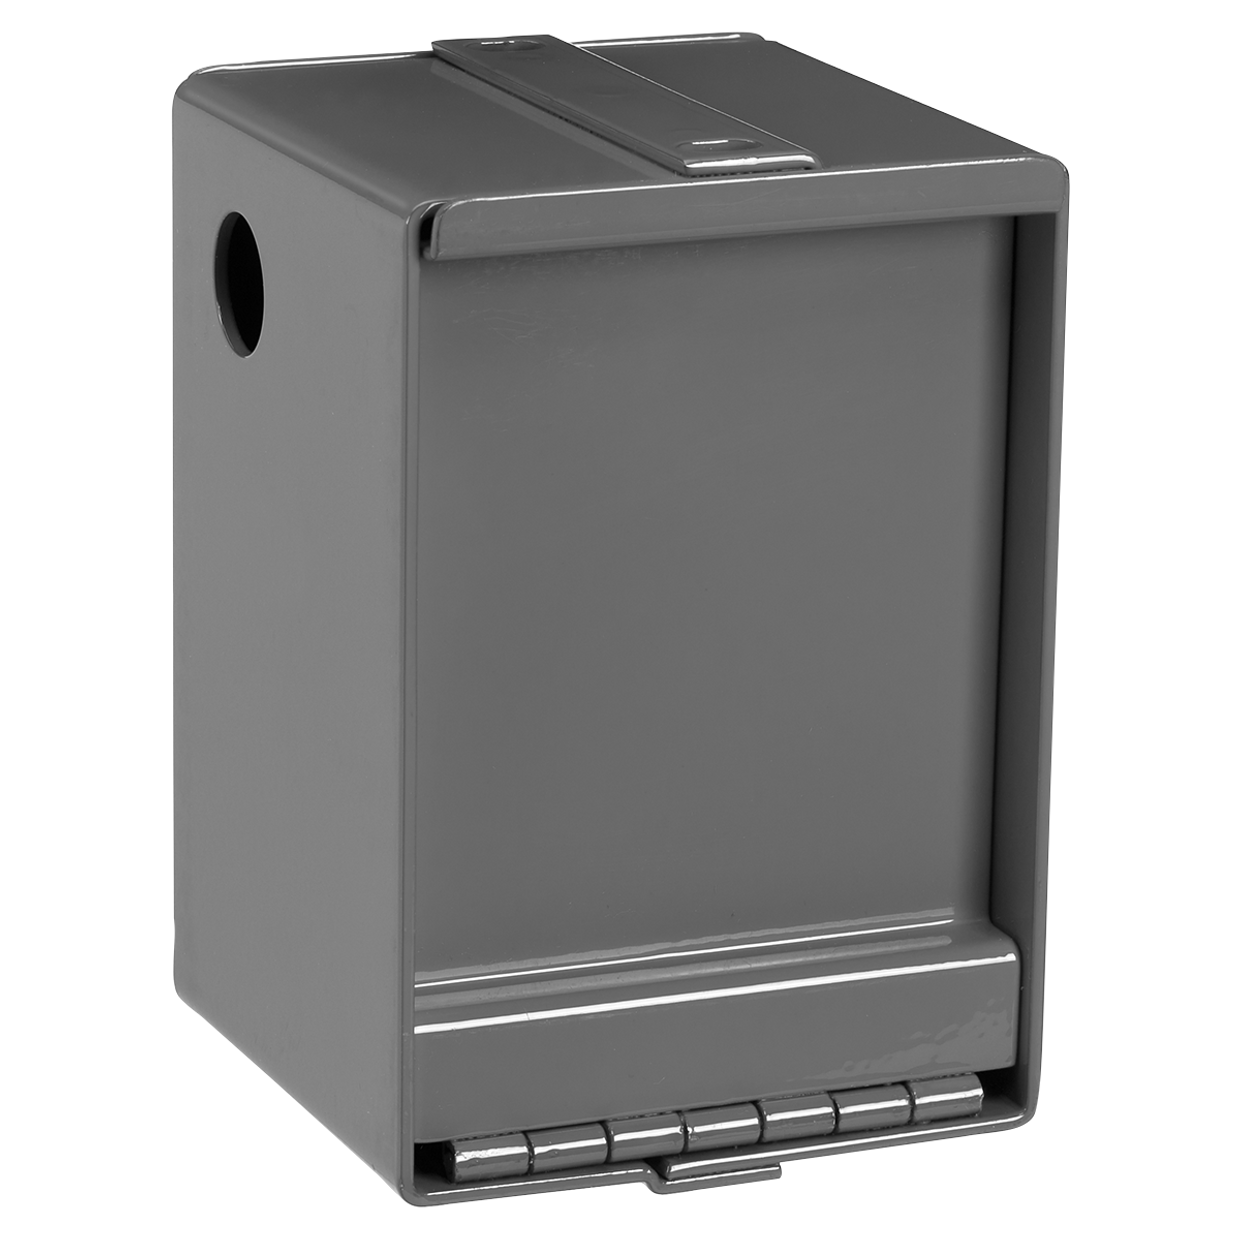 ACP17 Fire Access Box with Cable Release HERO